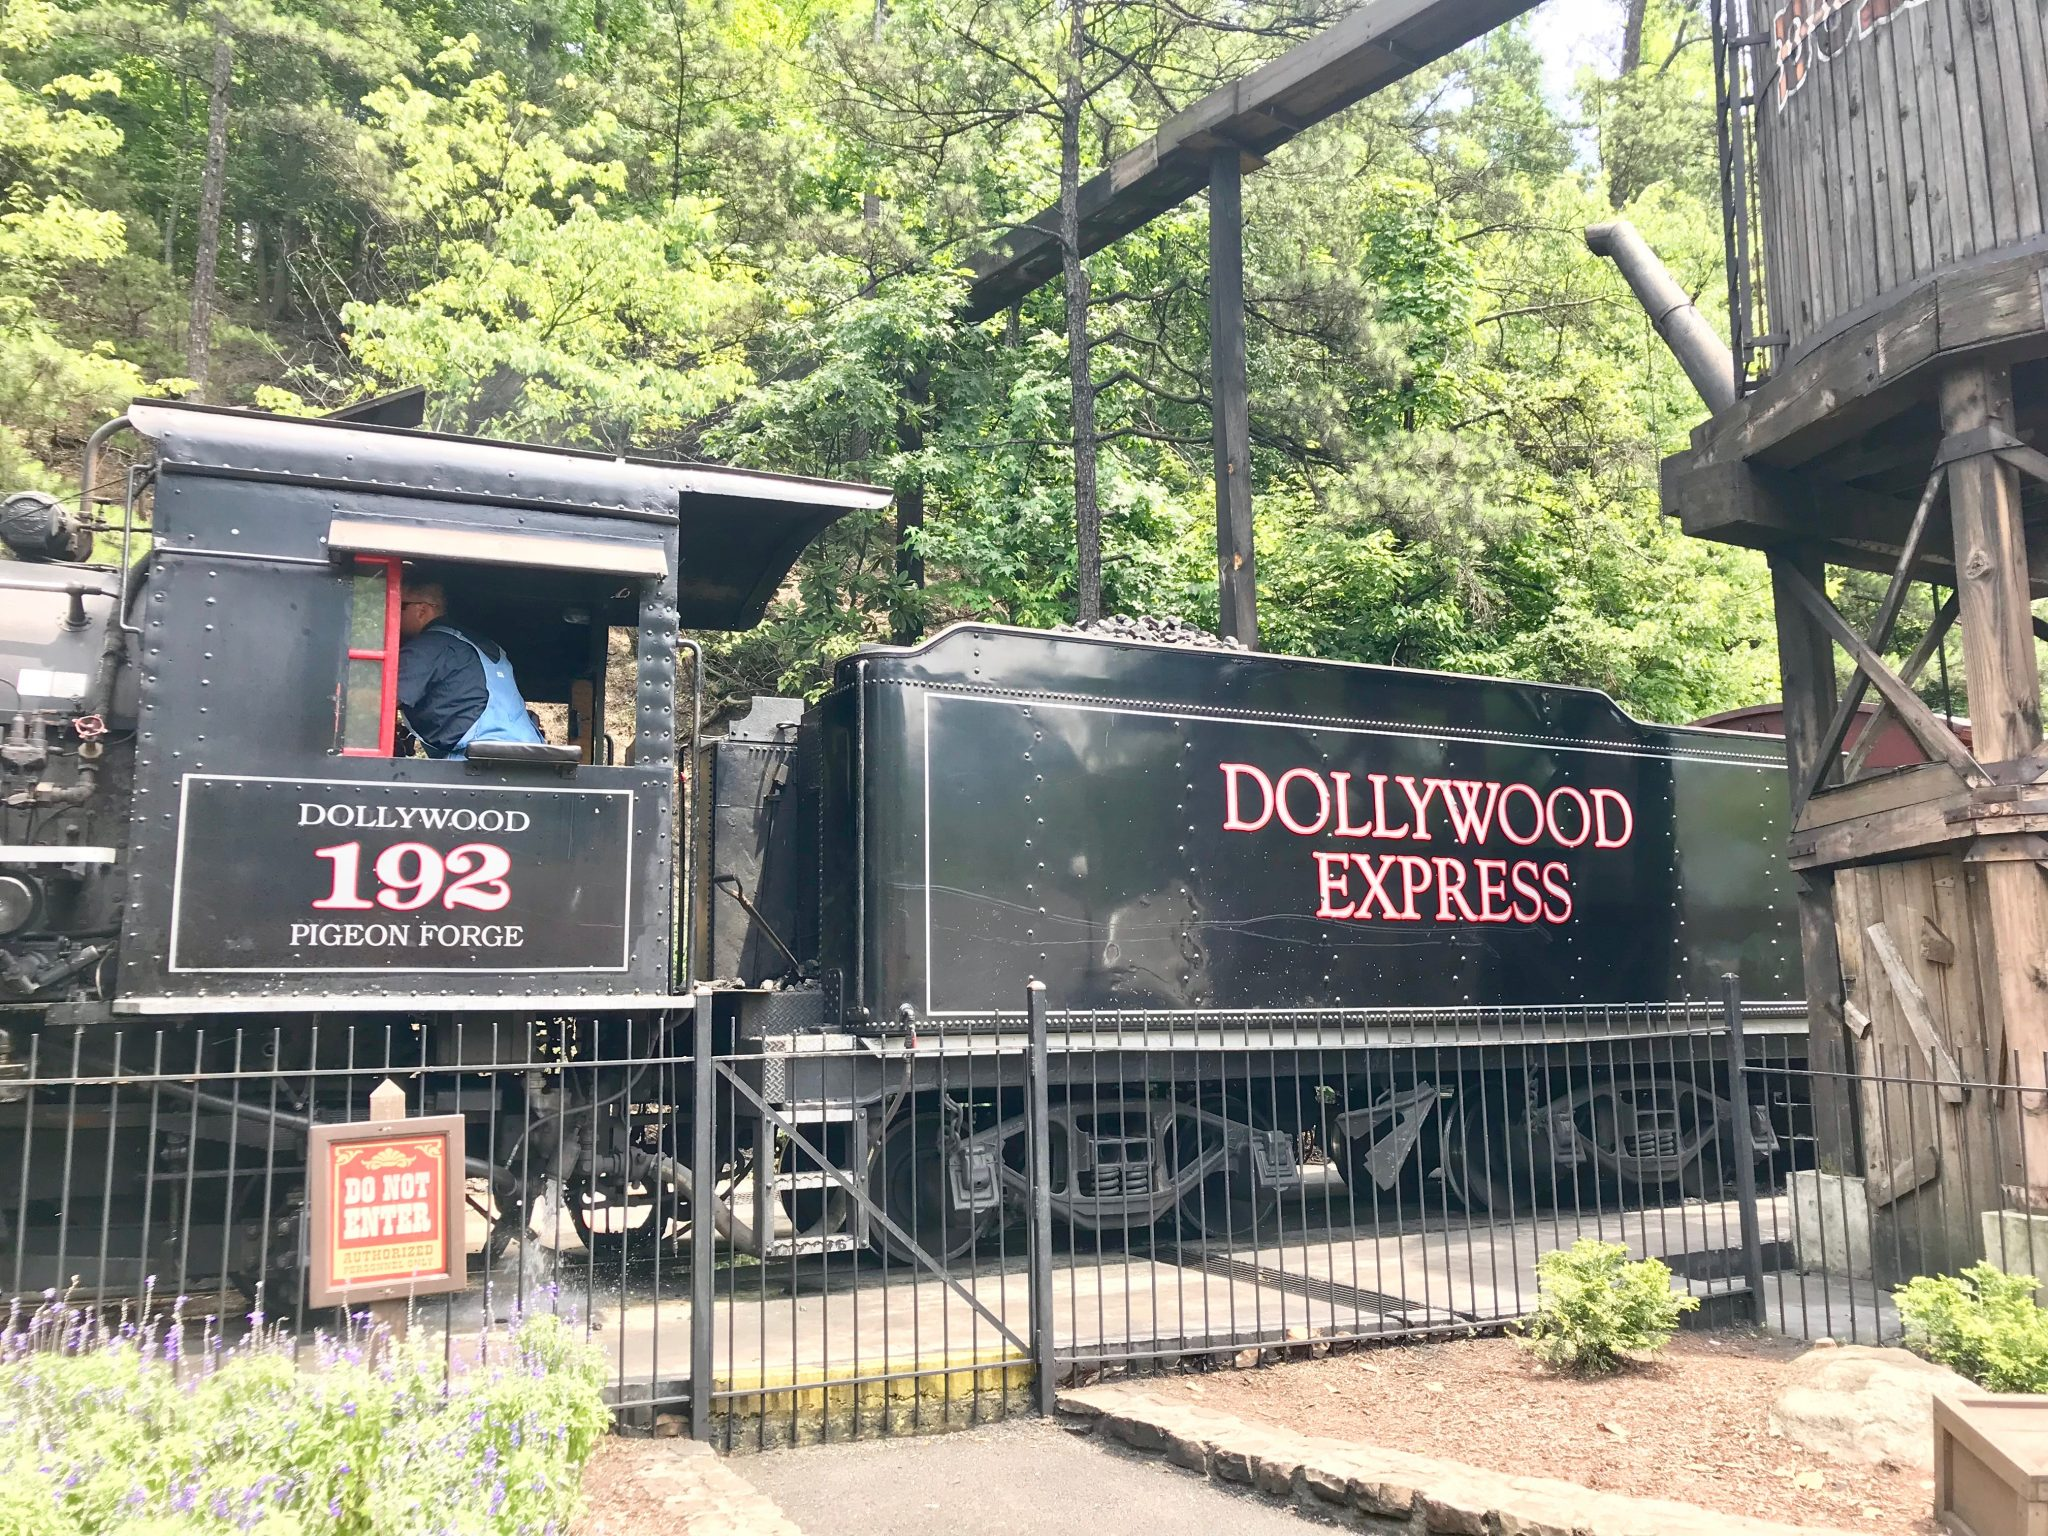 Train called the Dollywood Express at Dollywood